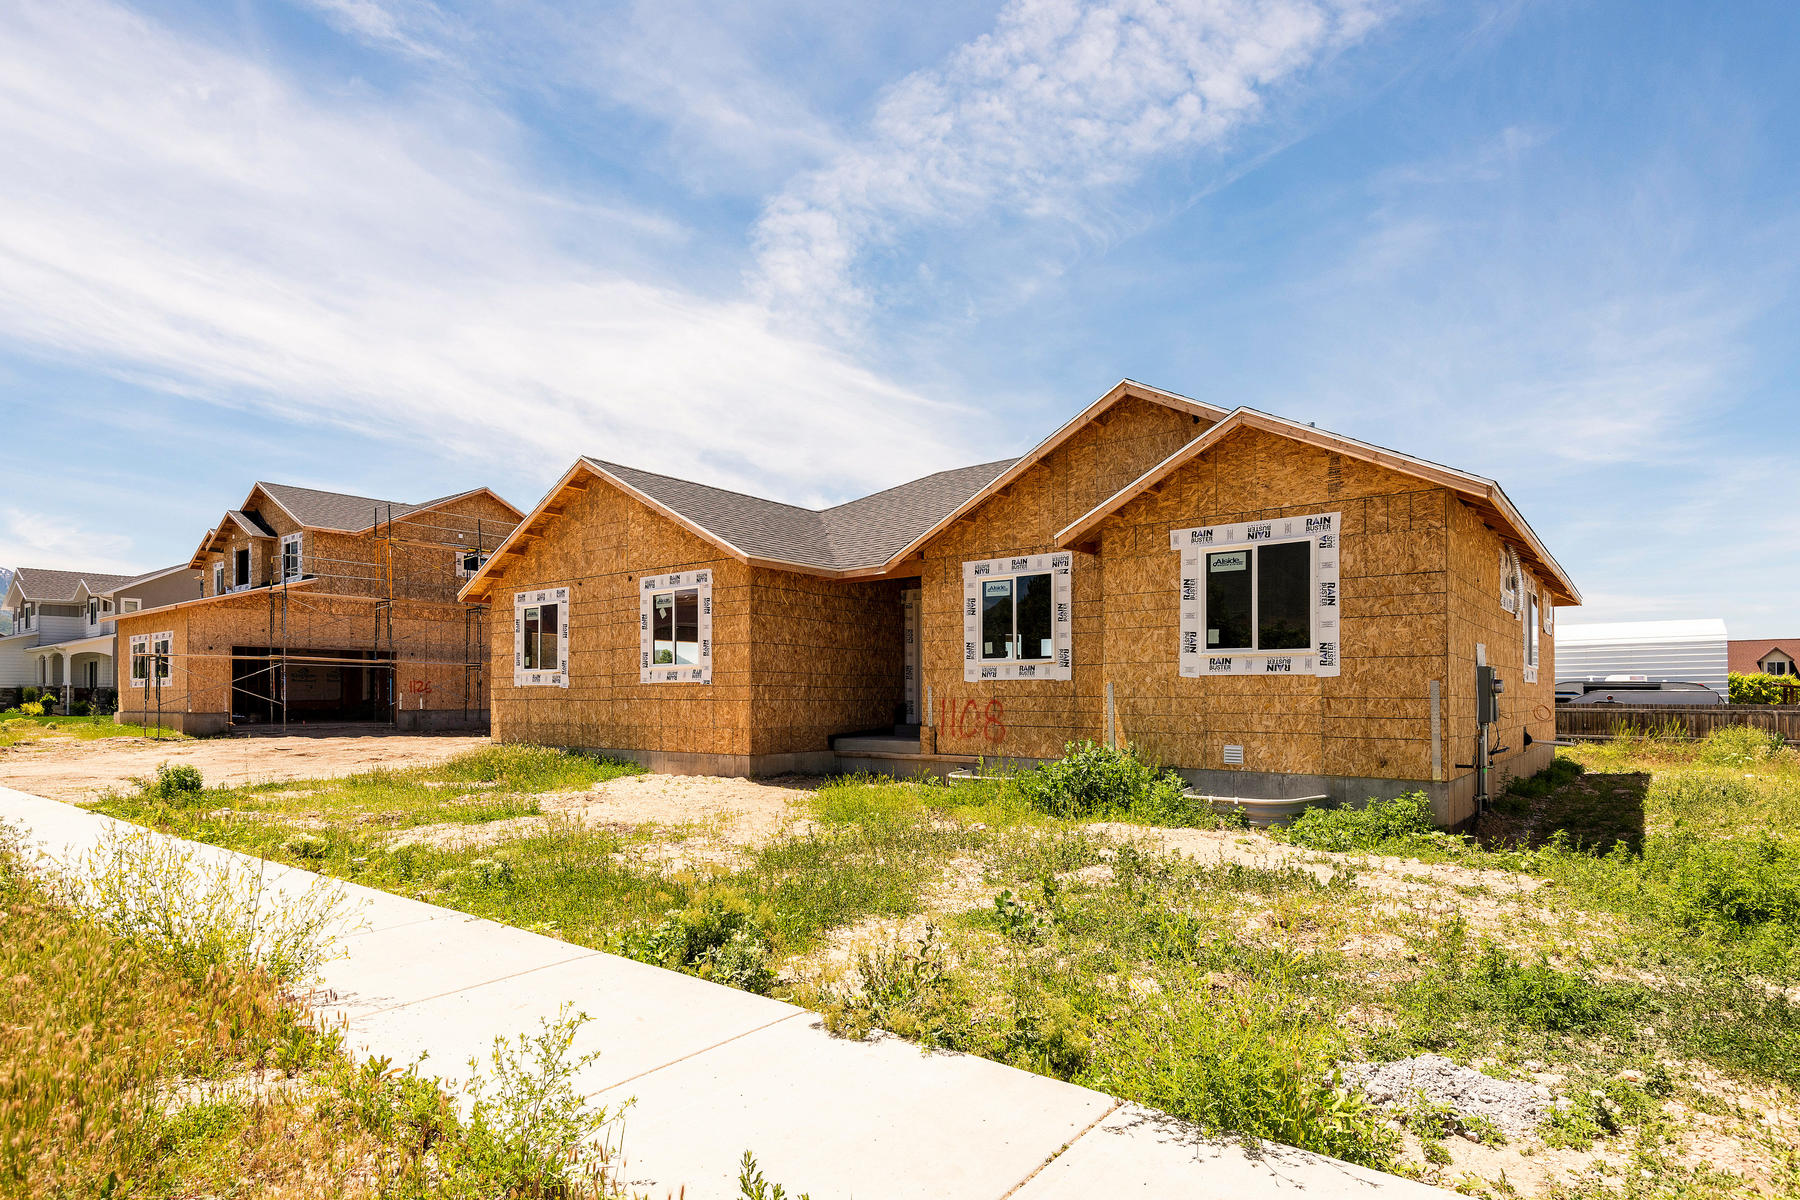 Single Family Homes for Active at New Construction in Spanish Fork 1108 South 2300 East Spanish Fork, Utah 84660 United States